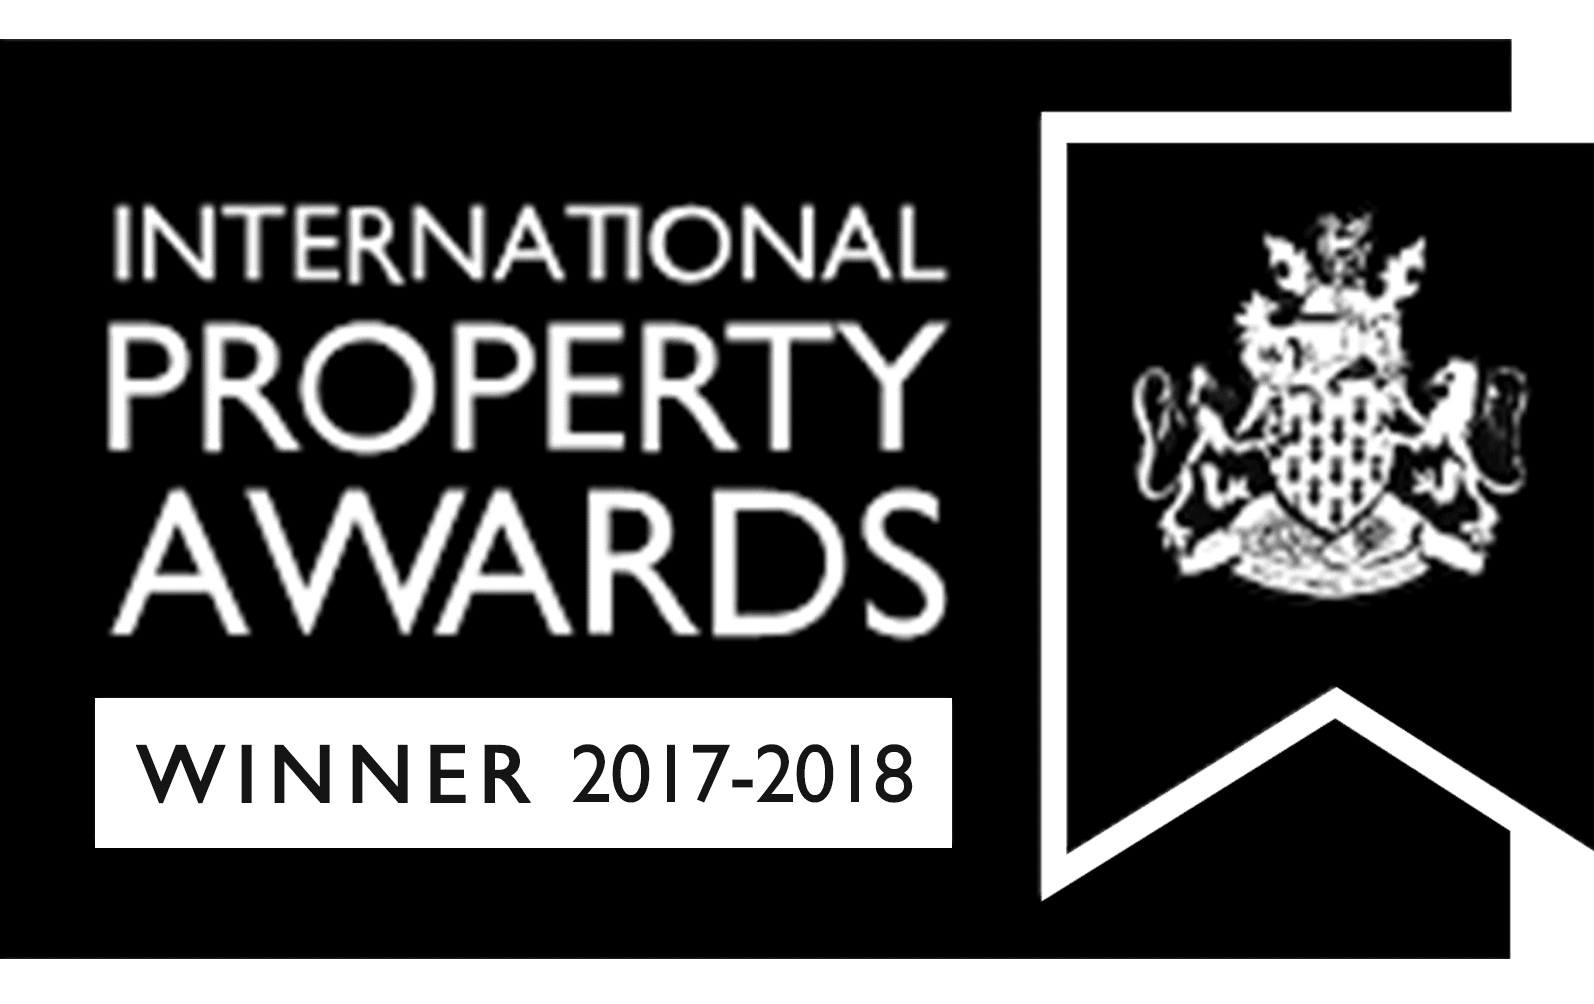 International Property Awards 2017-18